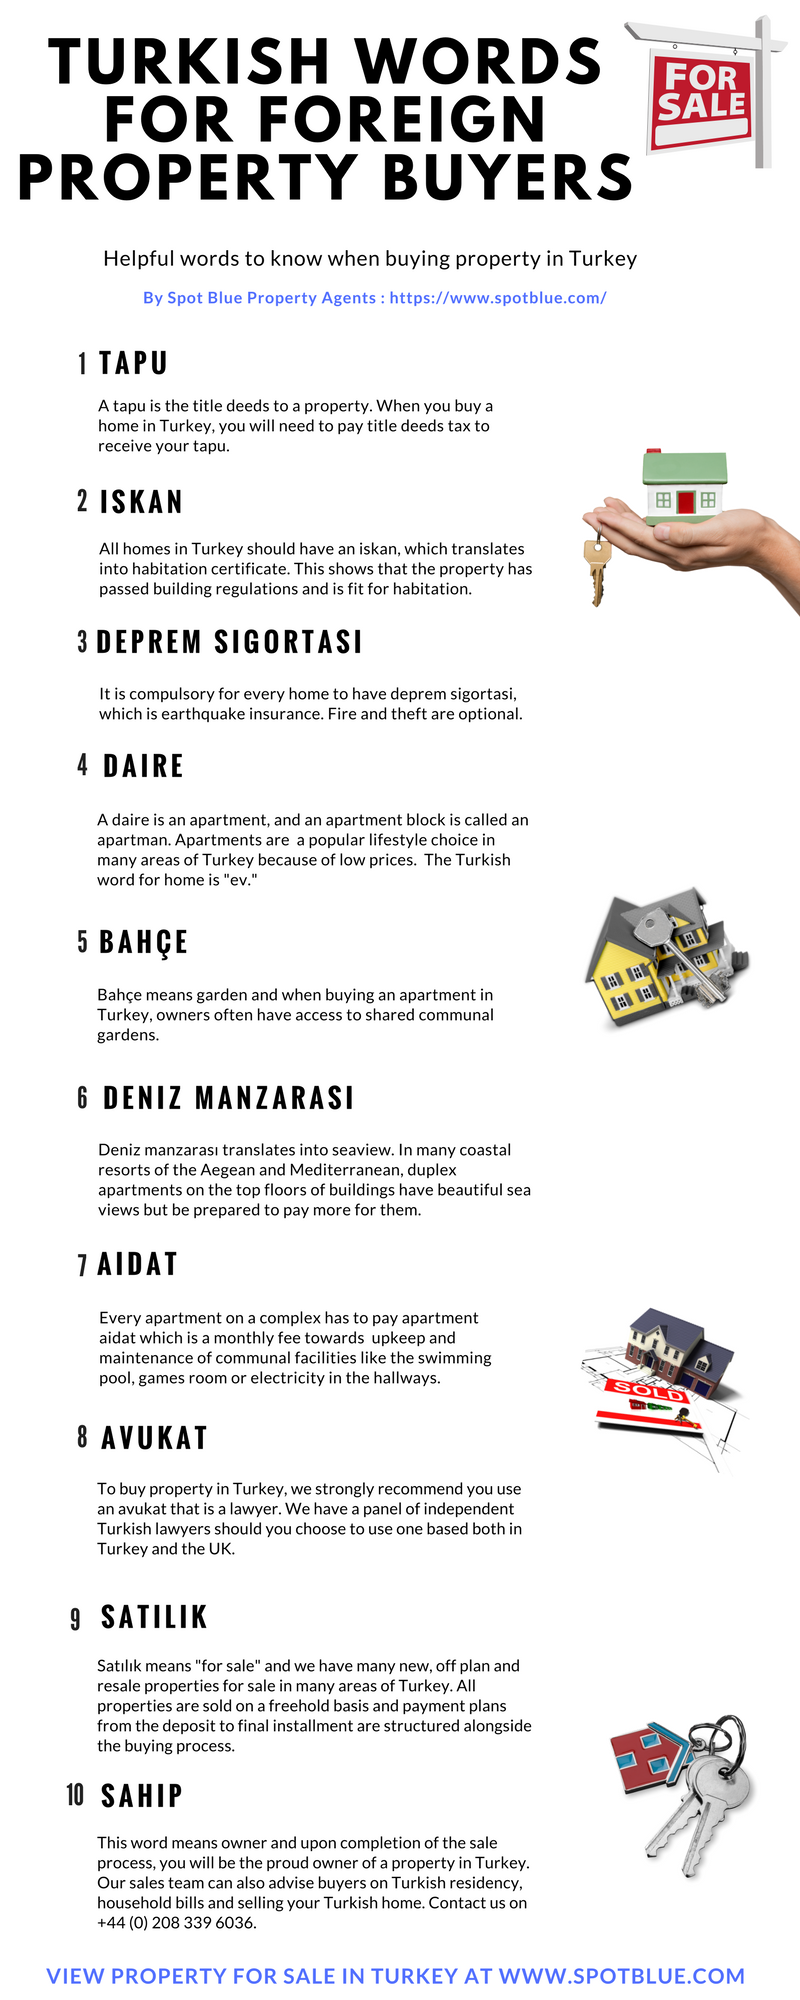 Turkish words for foreign property buyers